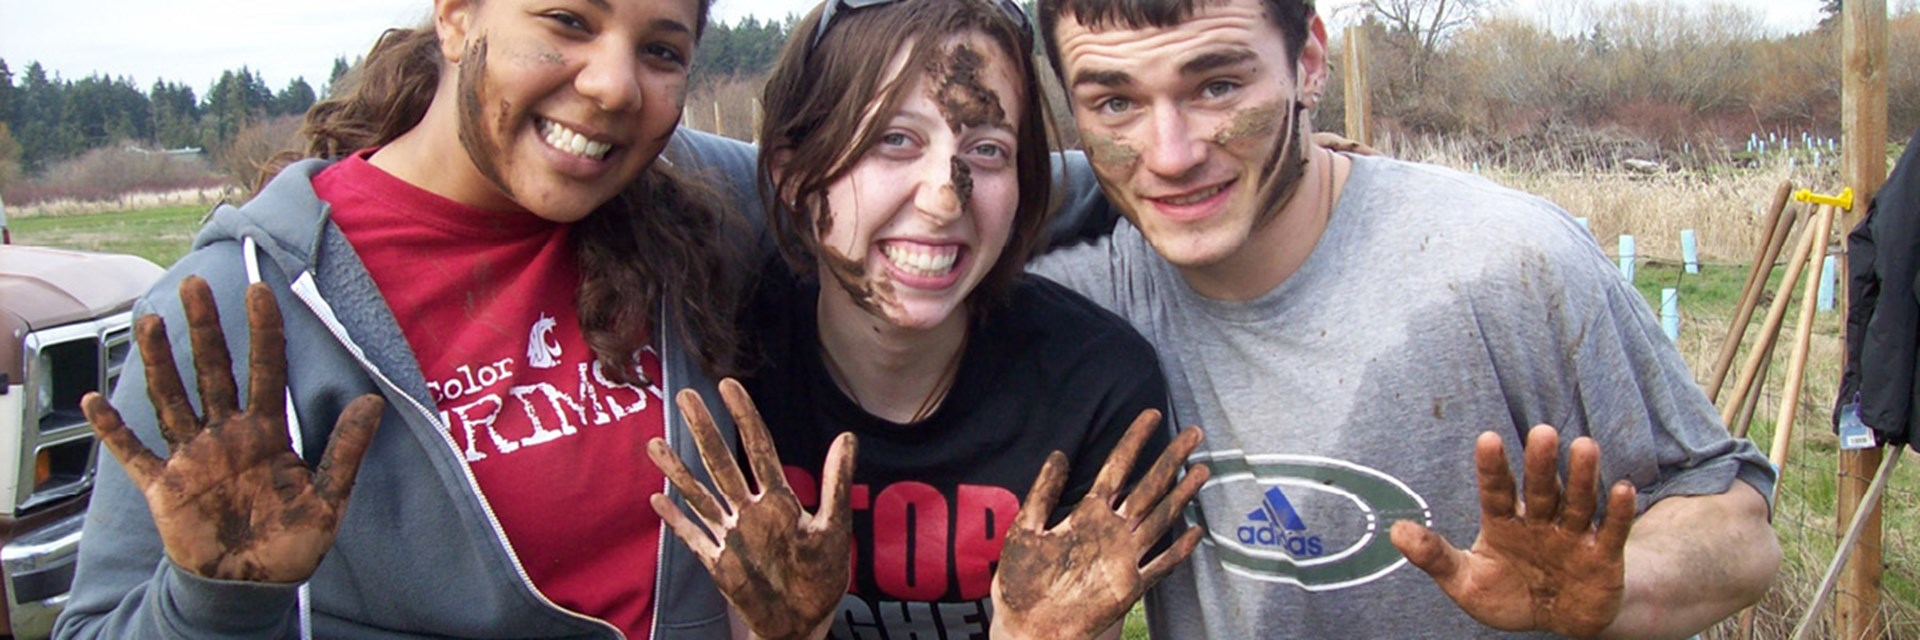 Students with muddy hands